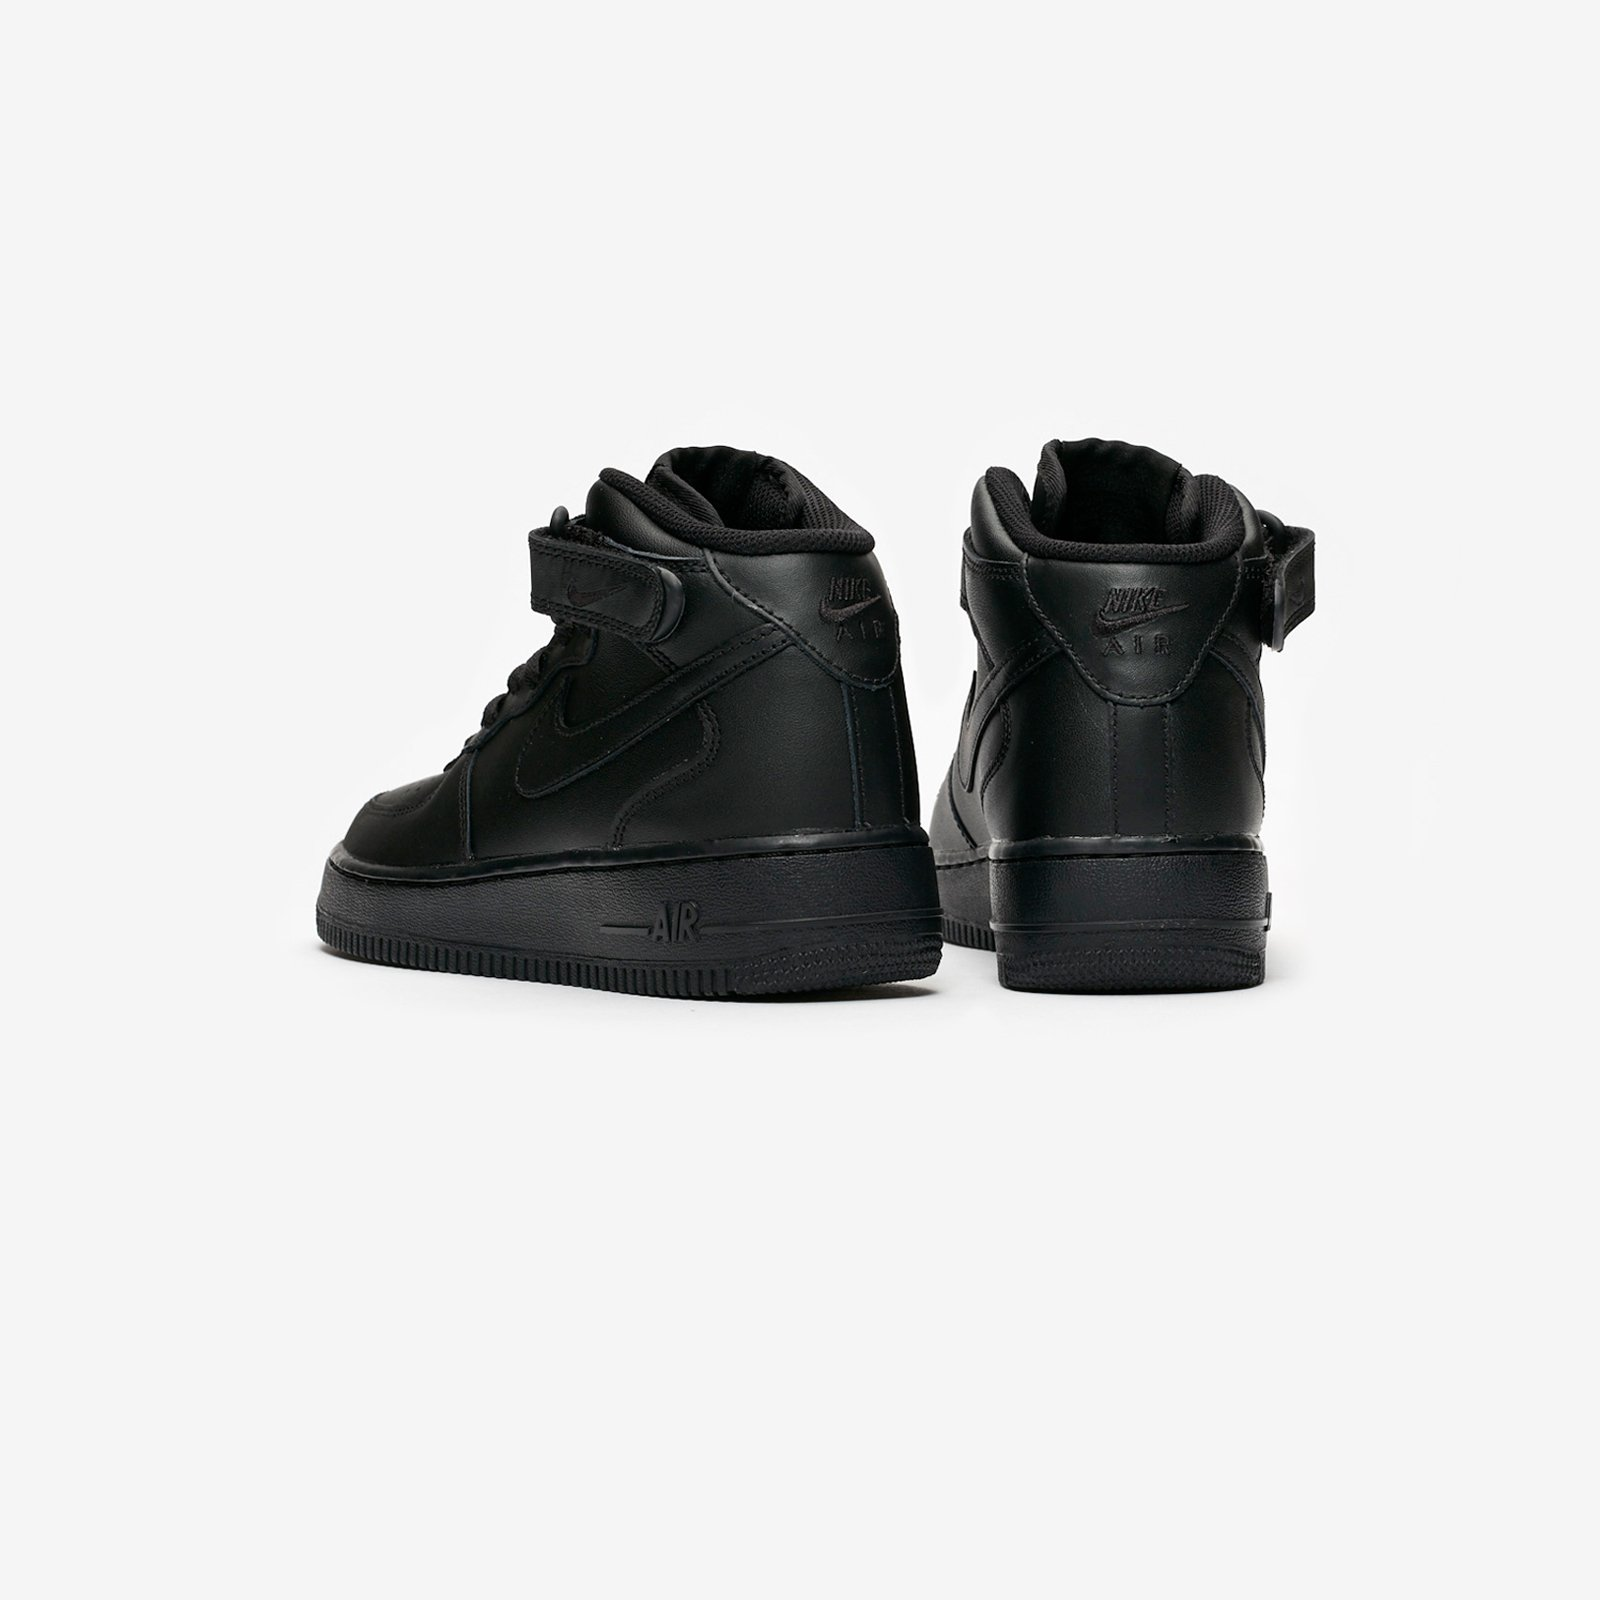 Nike Wmns Air Force 1 Mid 07 LE 366731 001